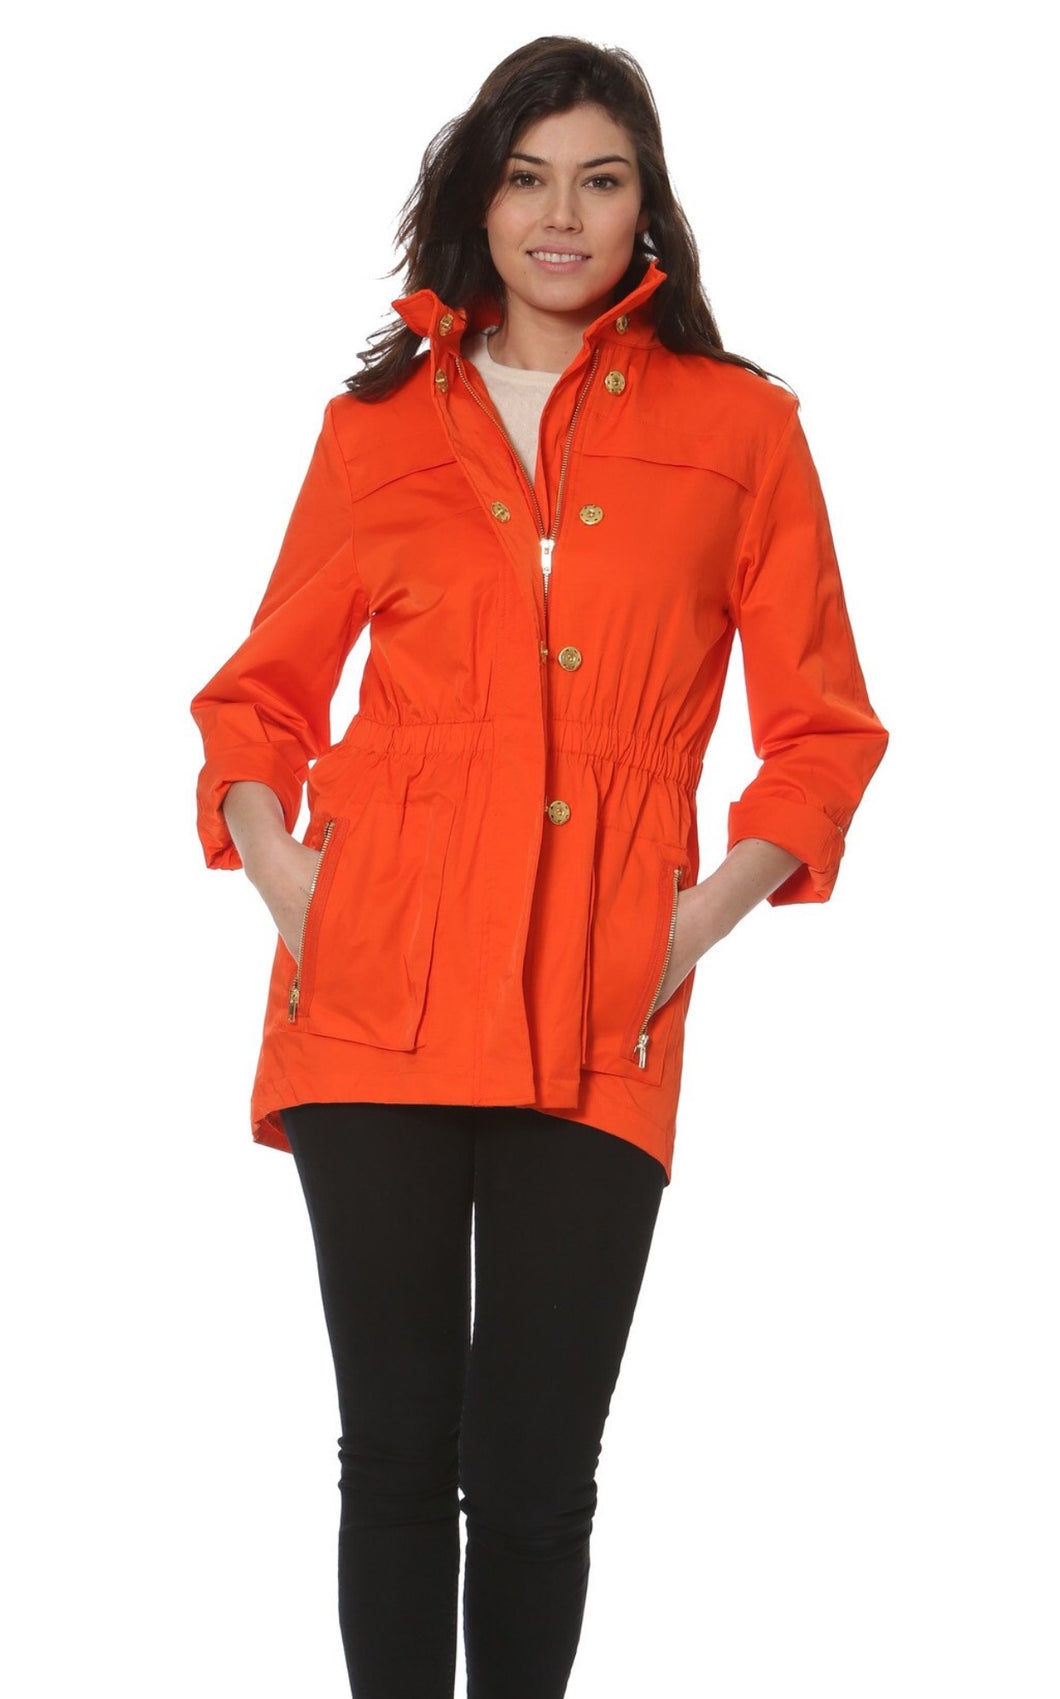 Ciao Milano Tess Jacket - Hermes Orange